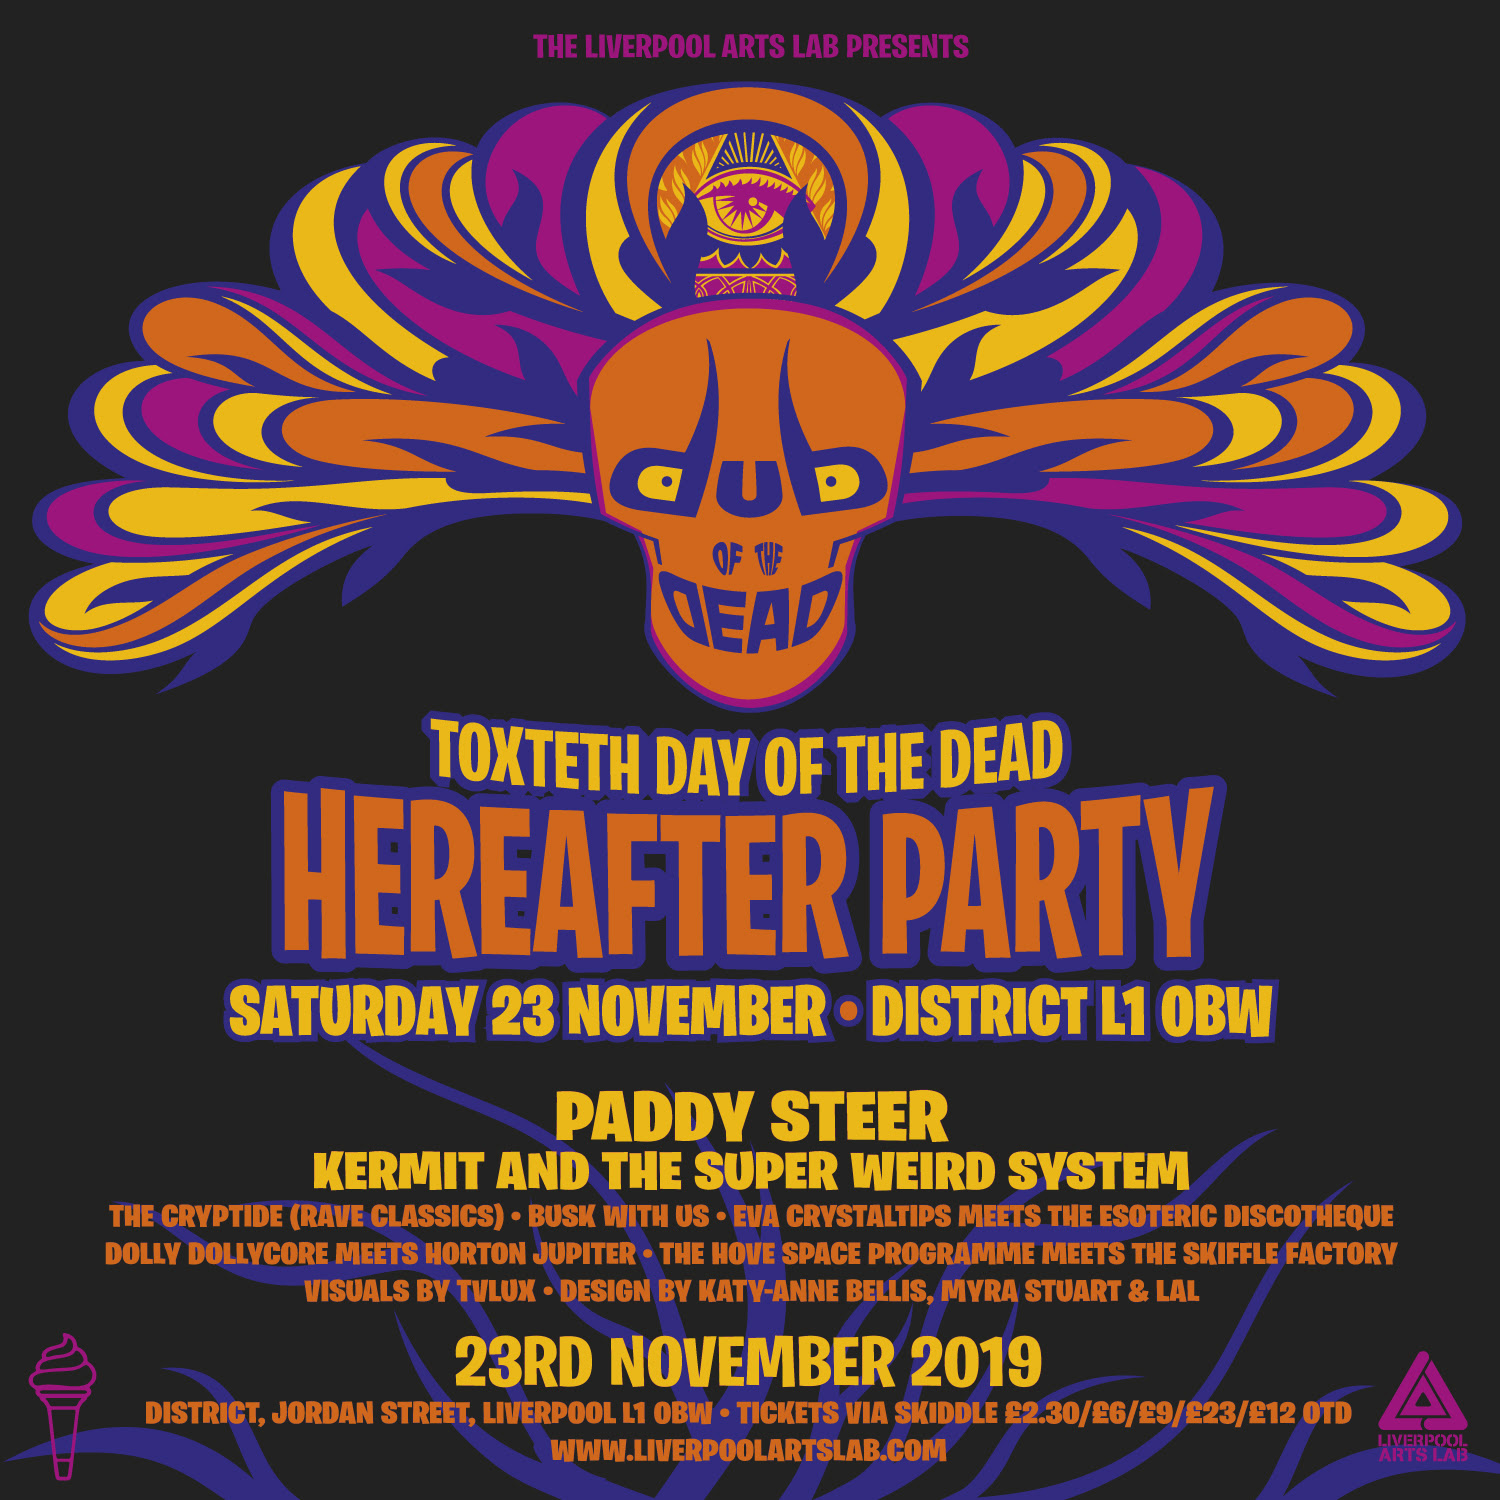 District: Toxteth Day of the Dead Hereafter Party